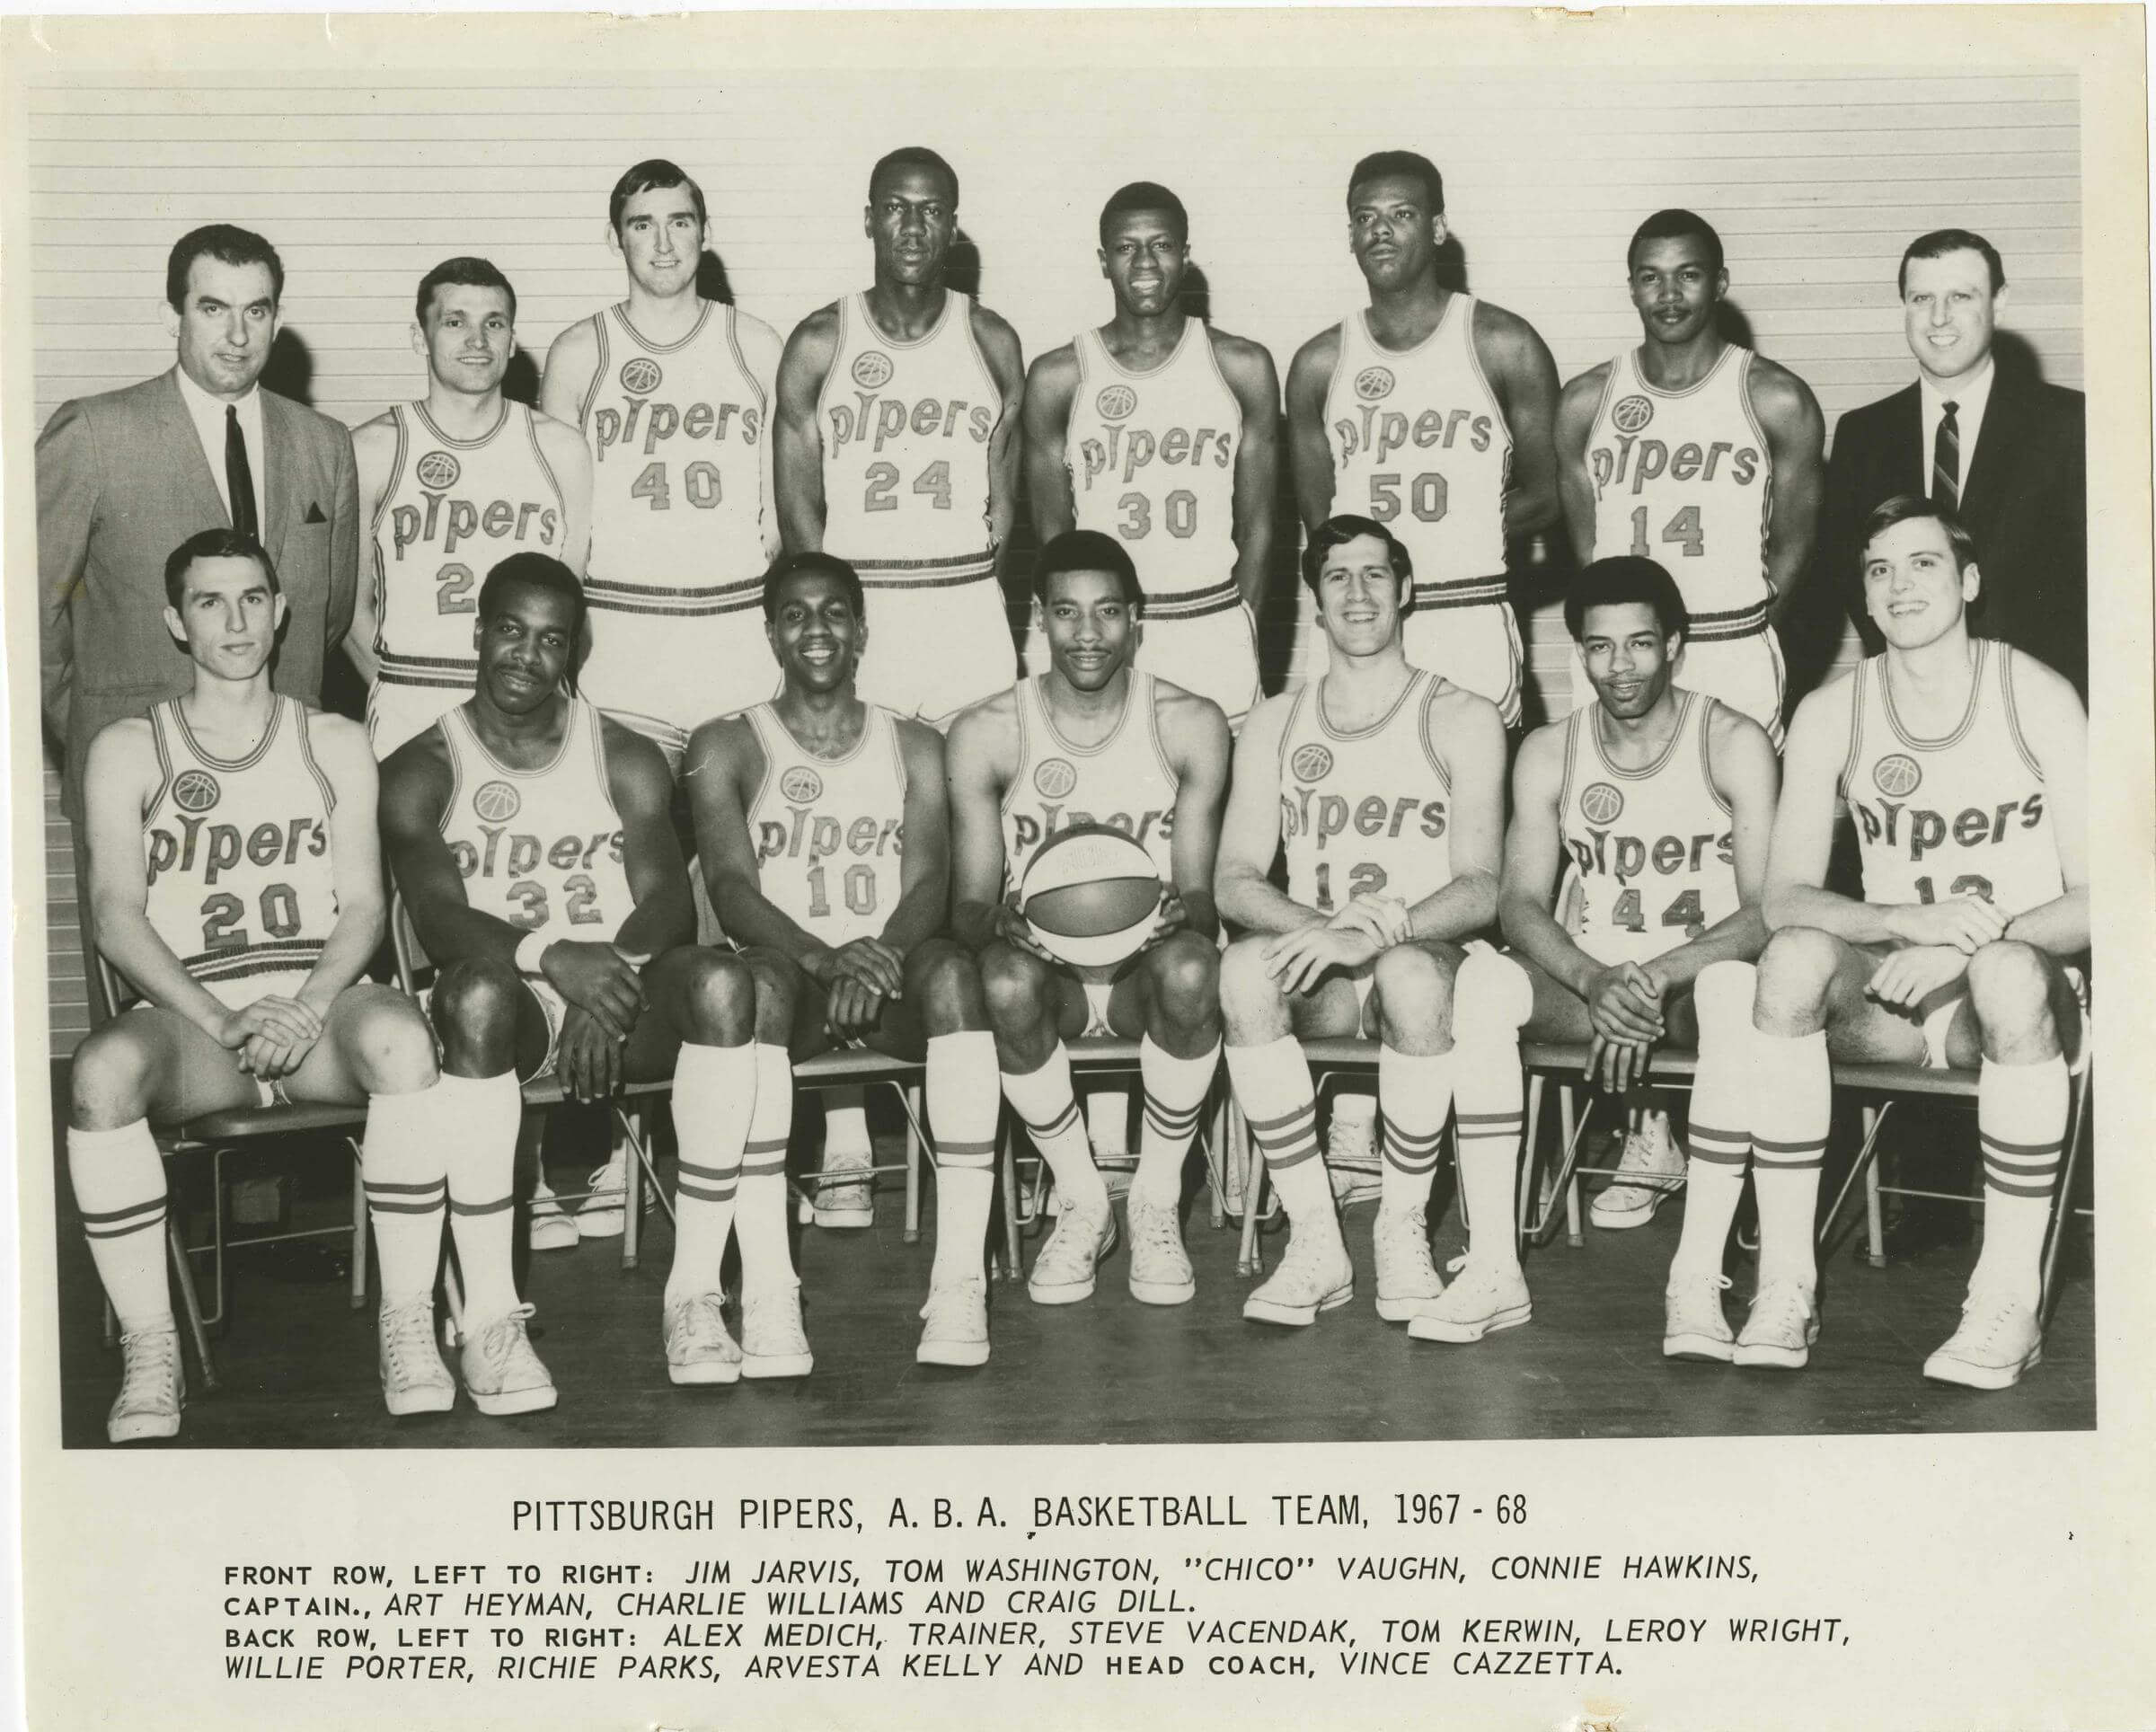 Pittsburgh Pipers 1967